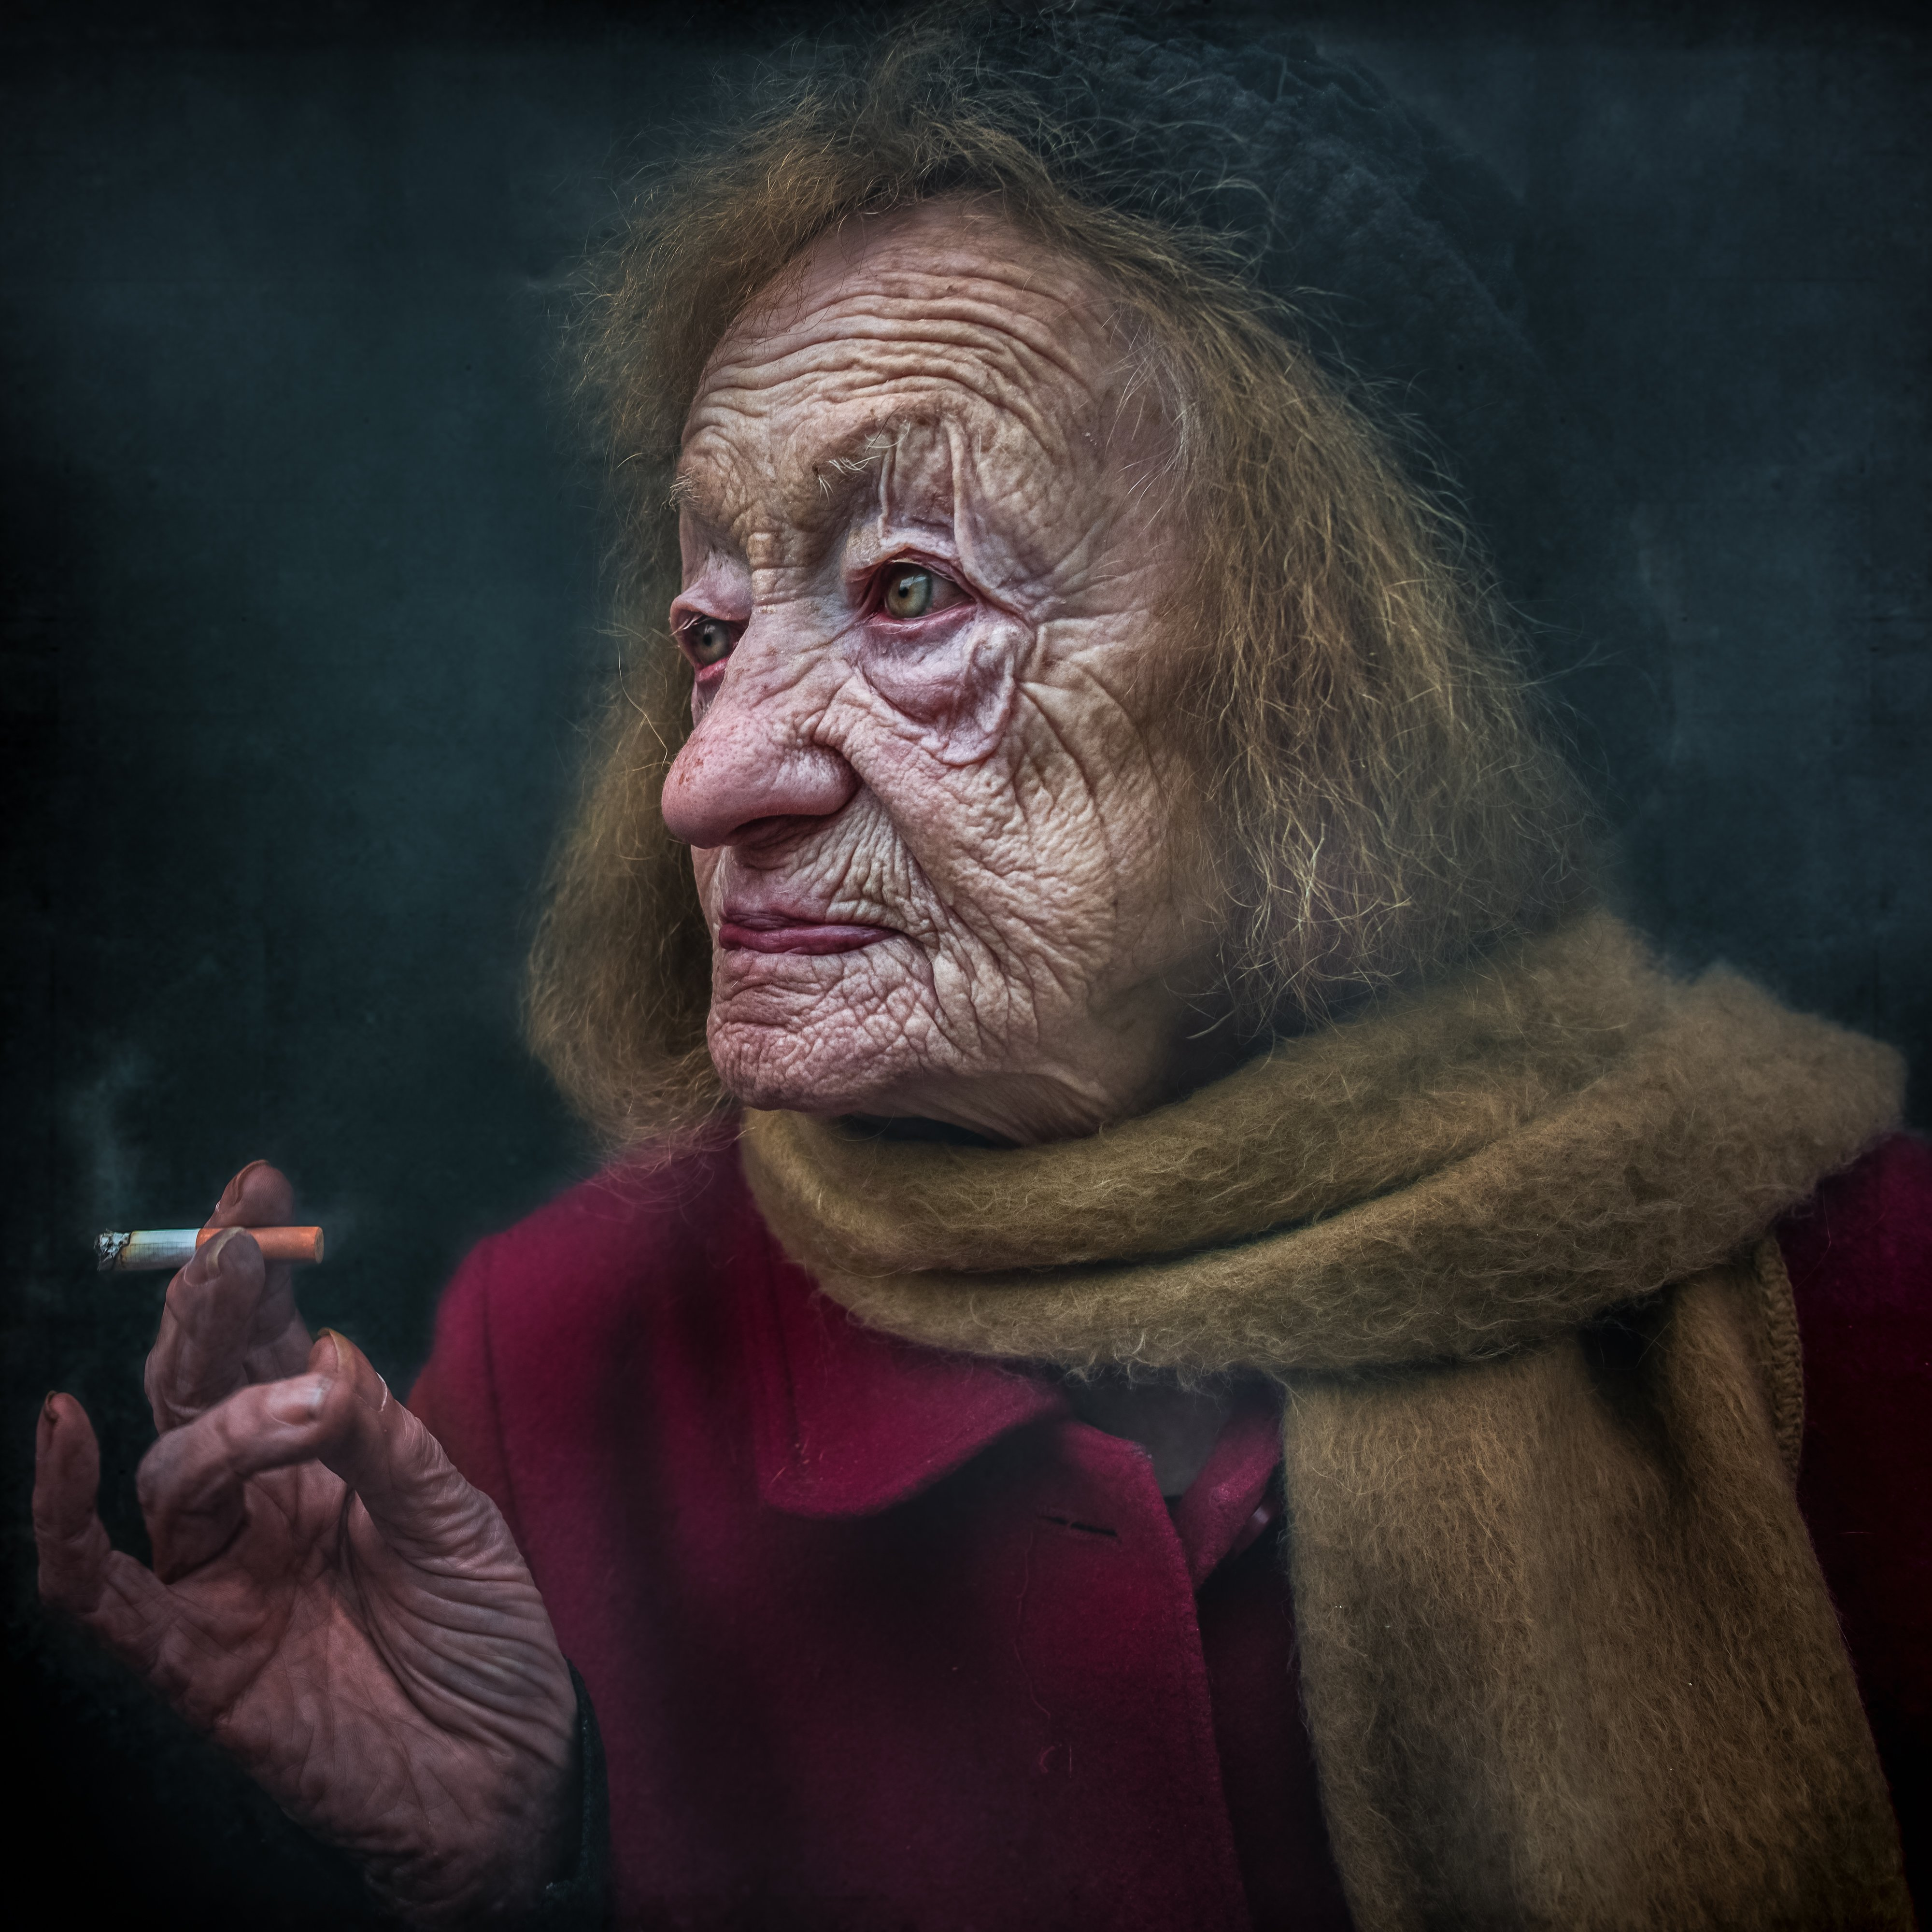 Lee Jeffries Fotodart